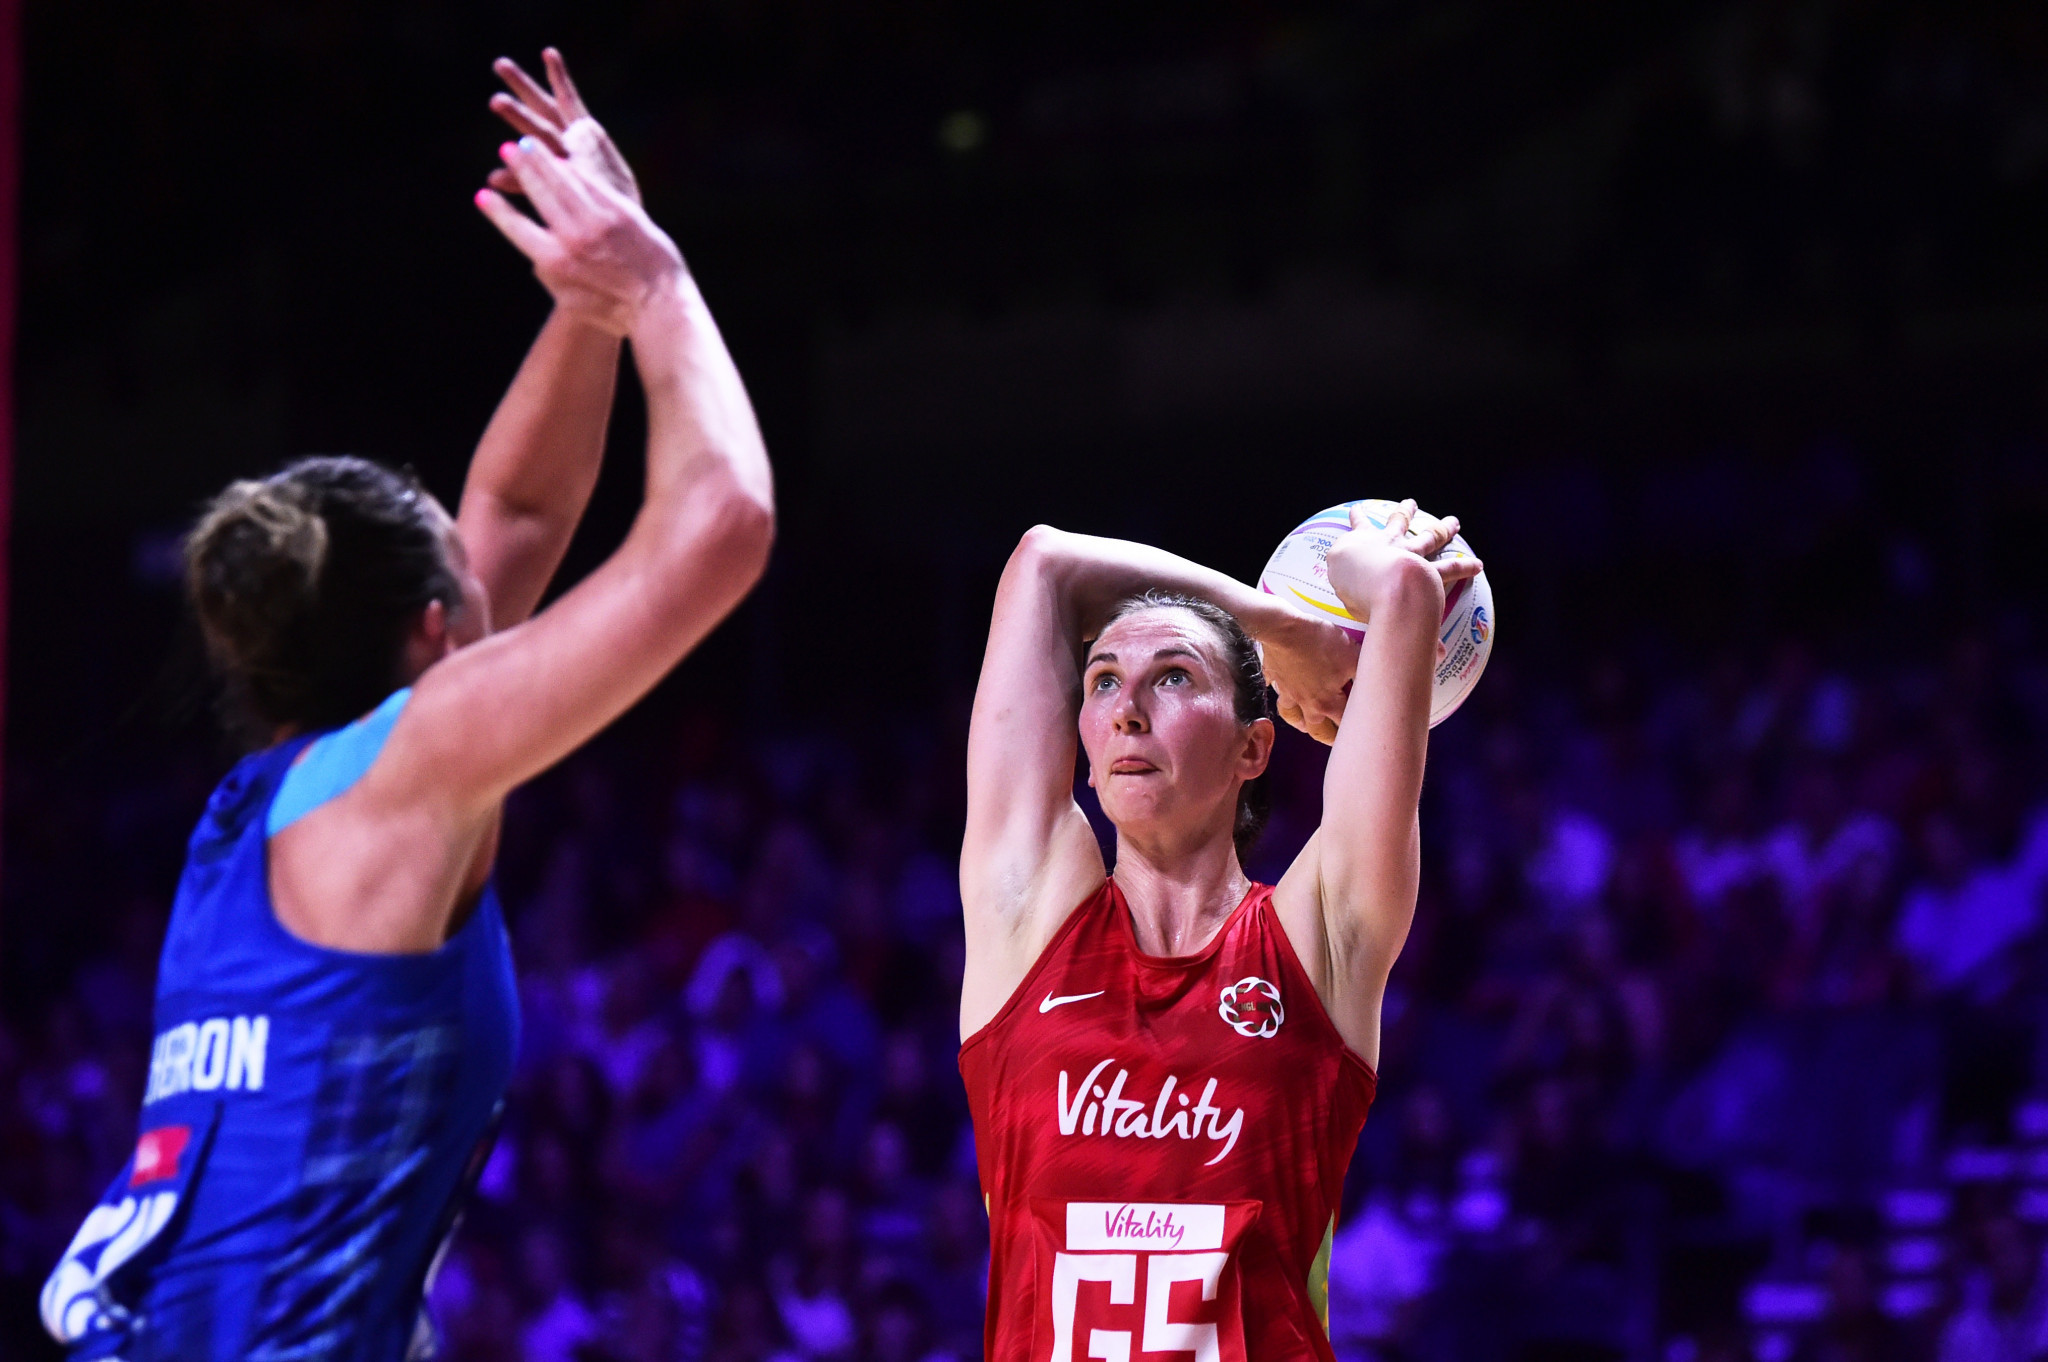 England and Australia continue unbeaten starts at Netball World Cup